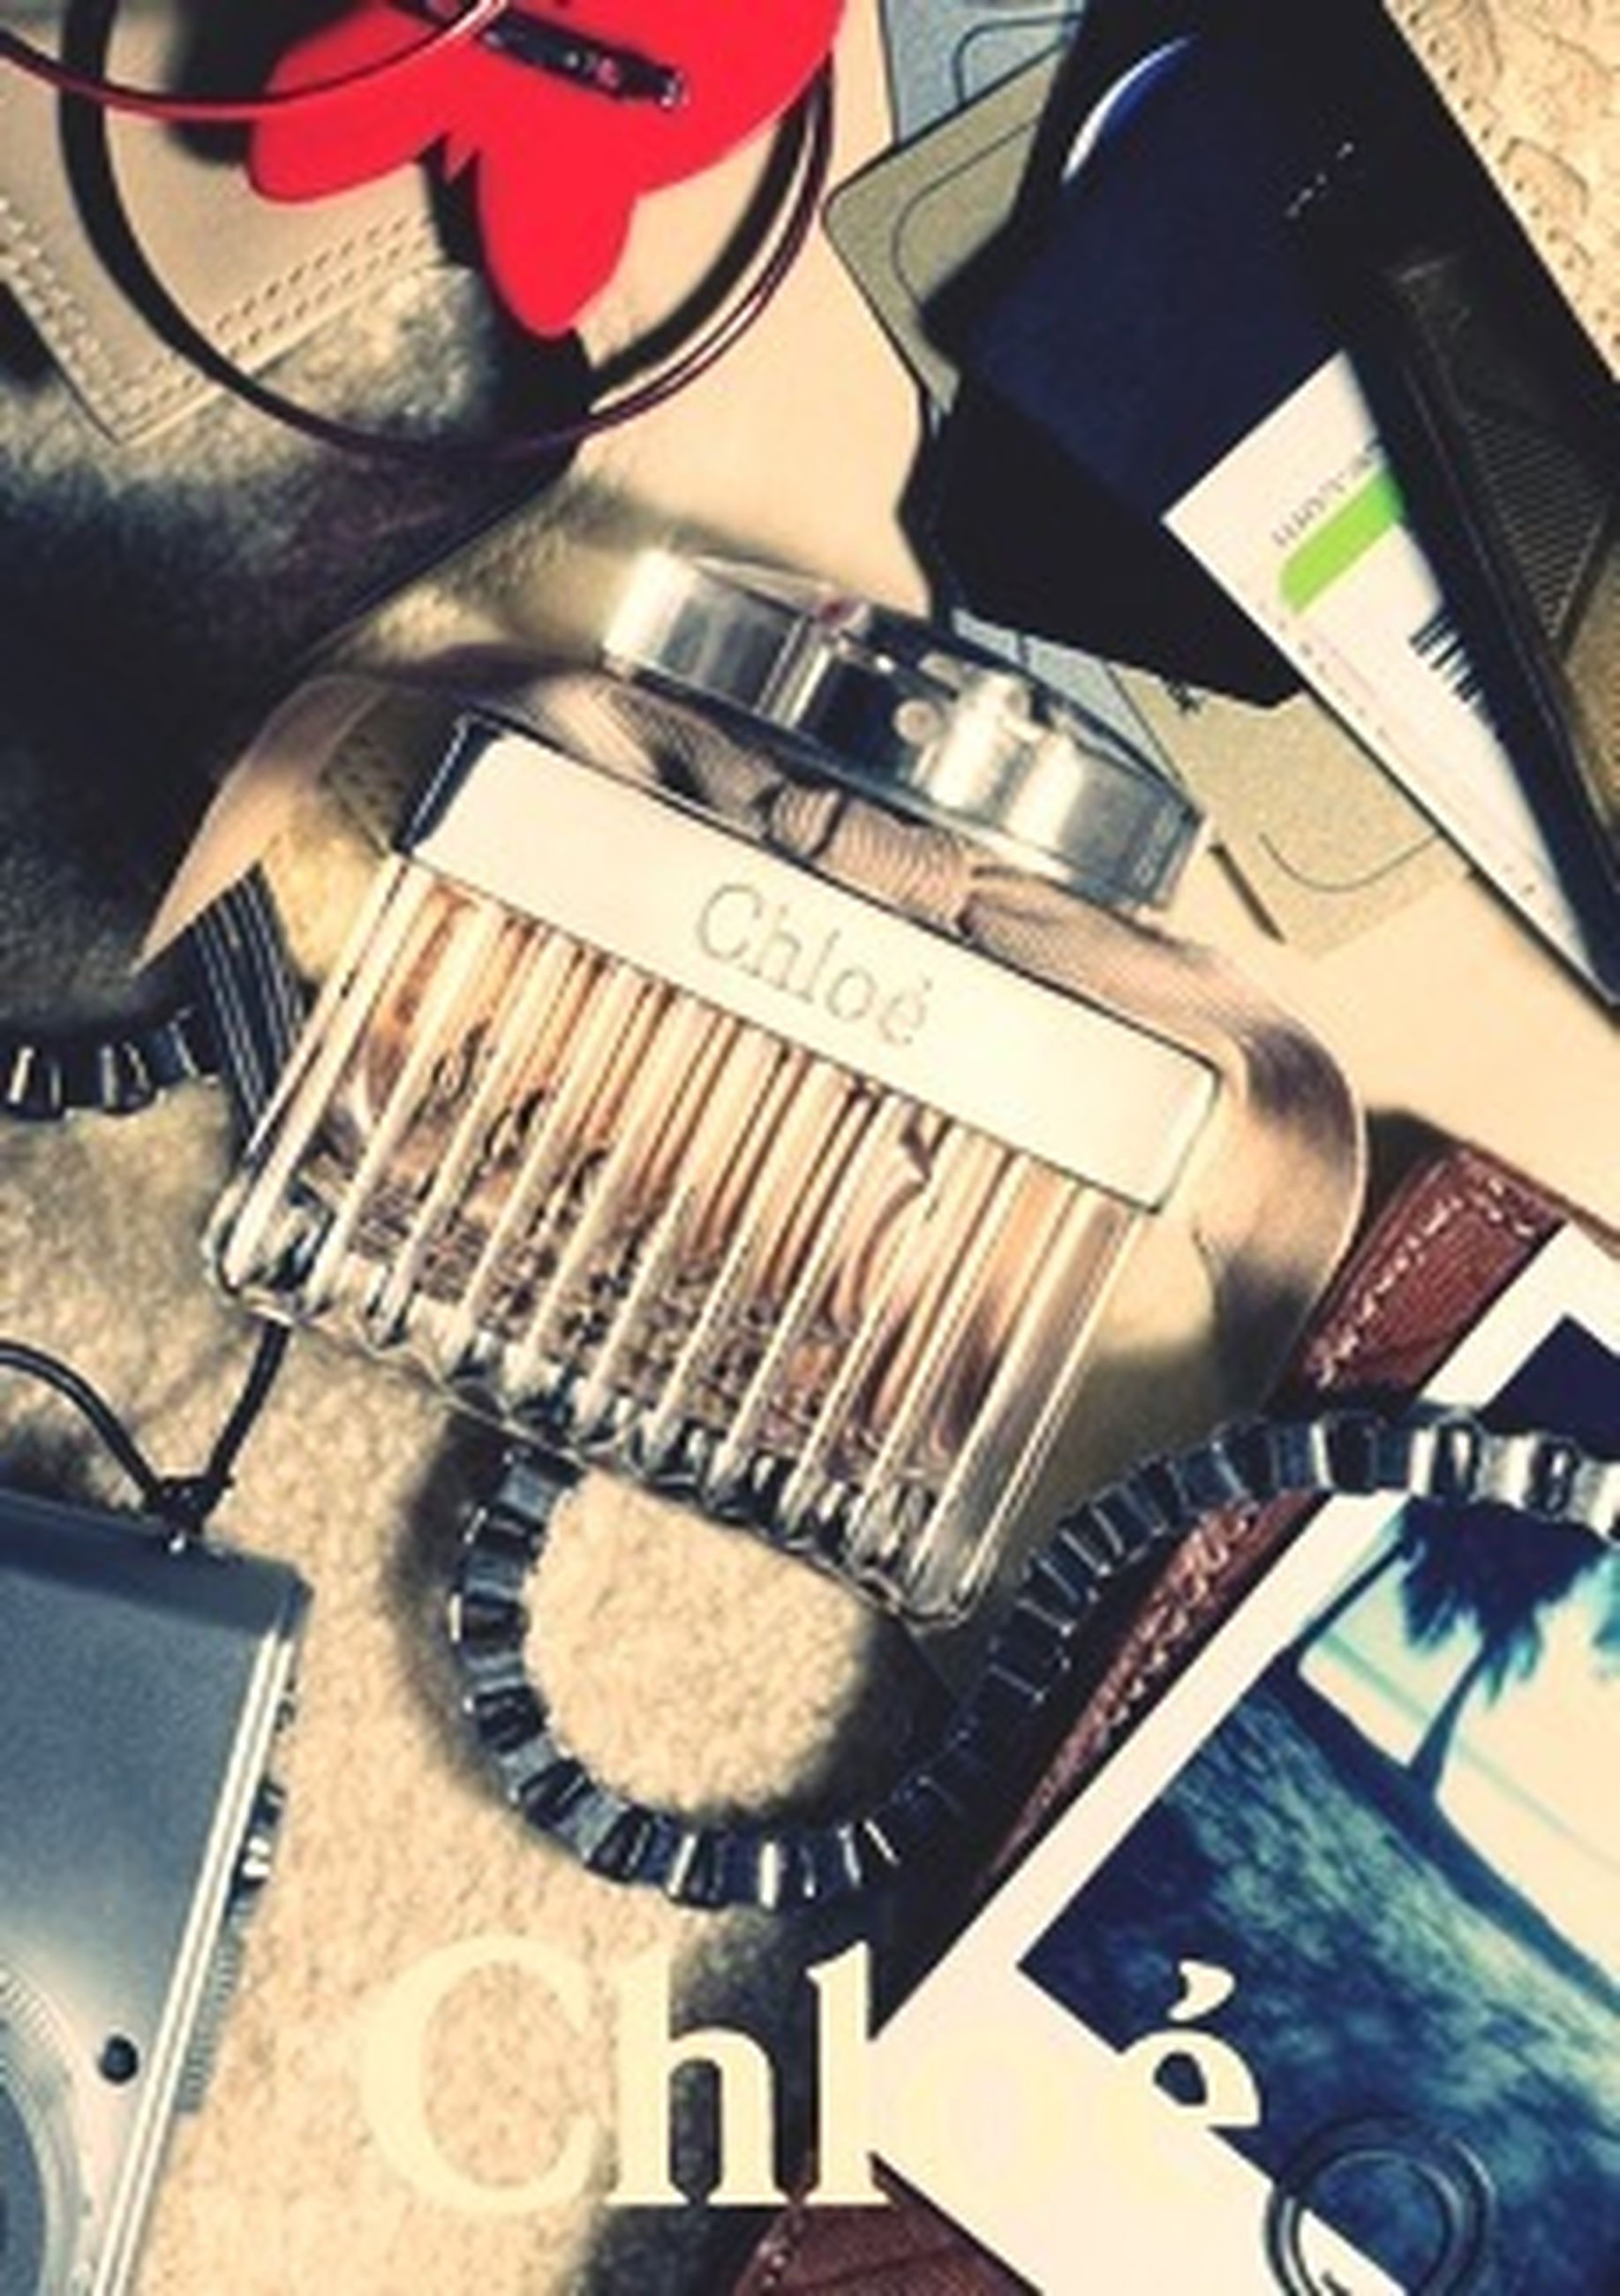 indoors, high angle view, still life, table, technology, communication, close-up, music, text, equipment, variation, work tool, arts culture and entertainment, retro styled, no people, musical instrument, connection, machinery, book, large group of objects